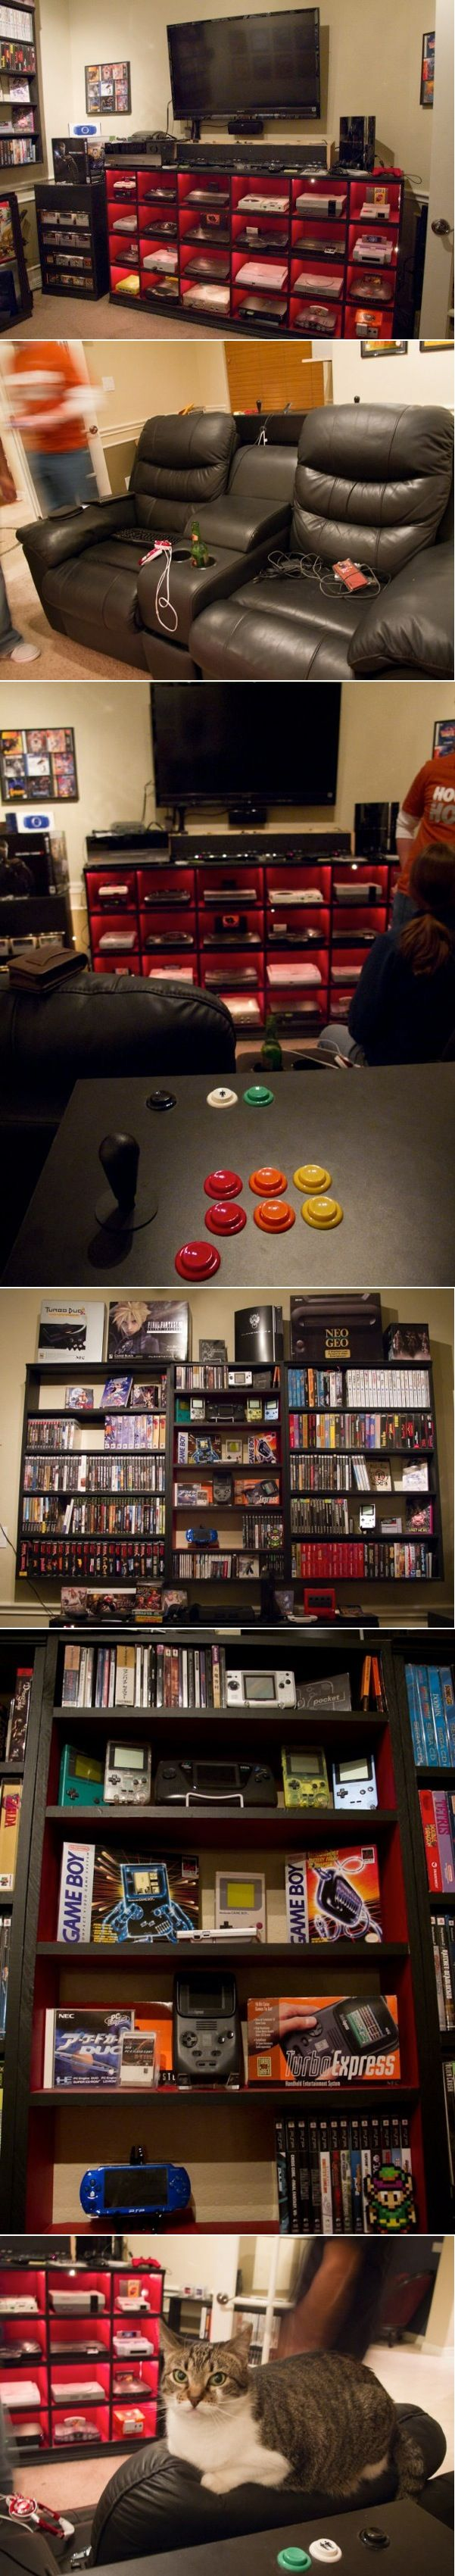 awesome home video game center the cat makes it that much cooler - Game Rooms